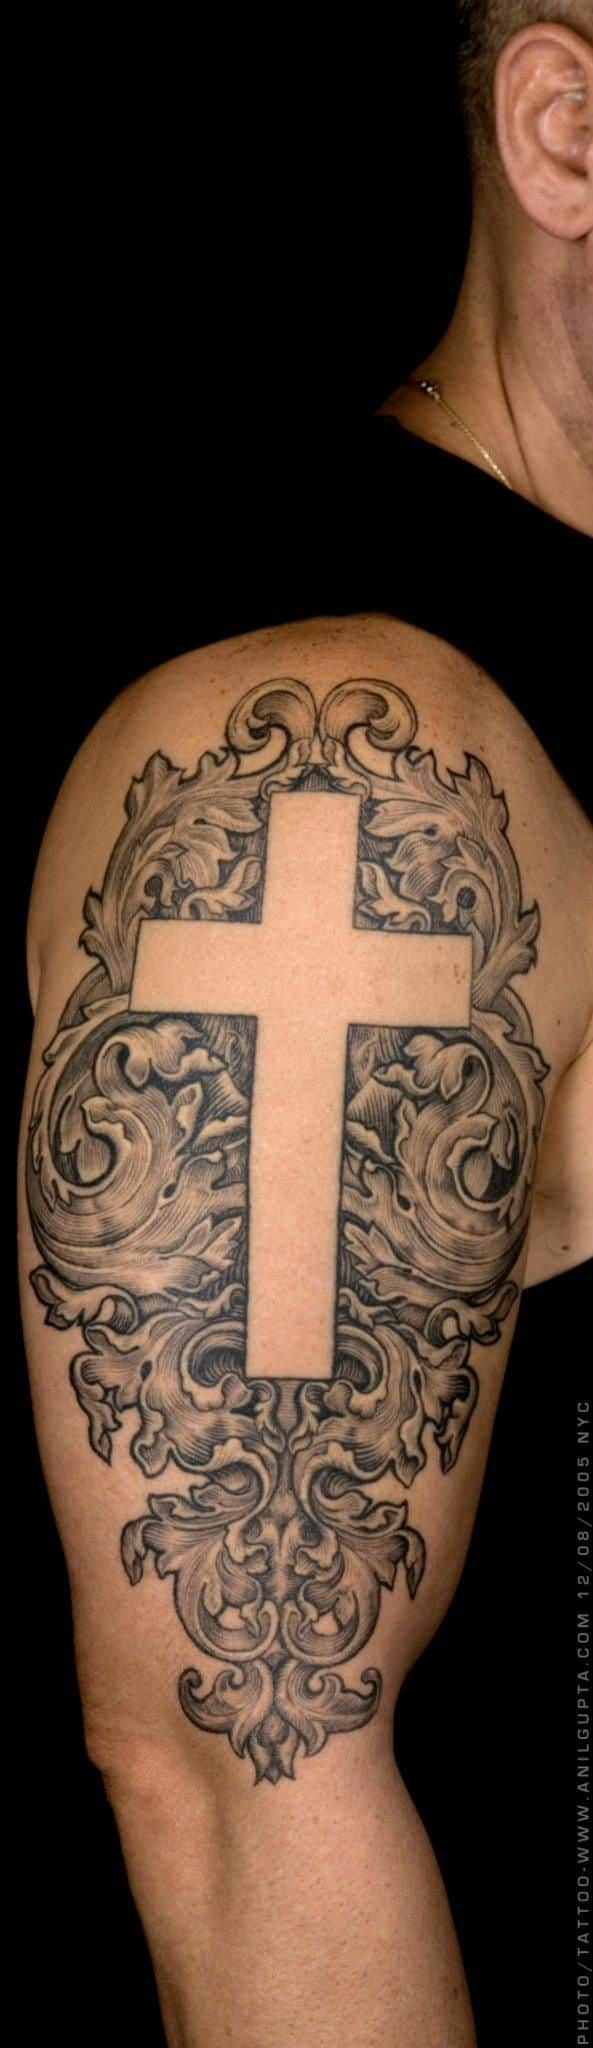 ideal cross sleeve tattoo designs